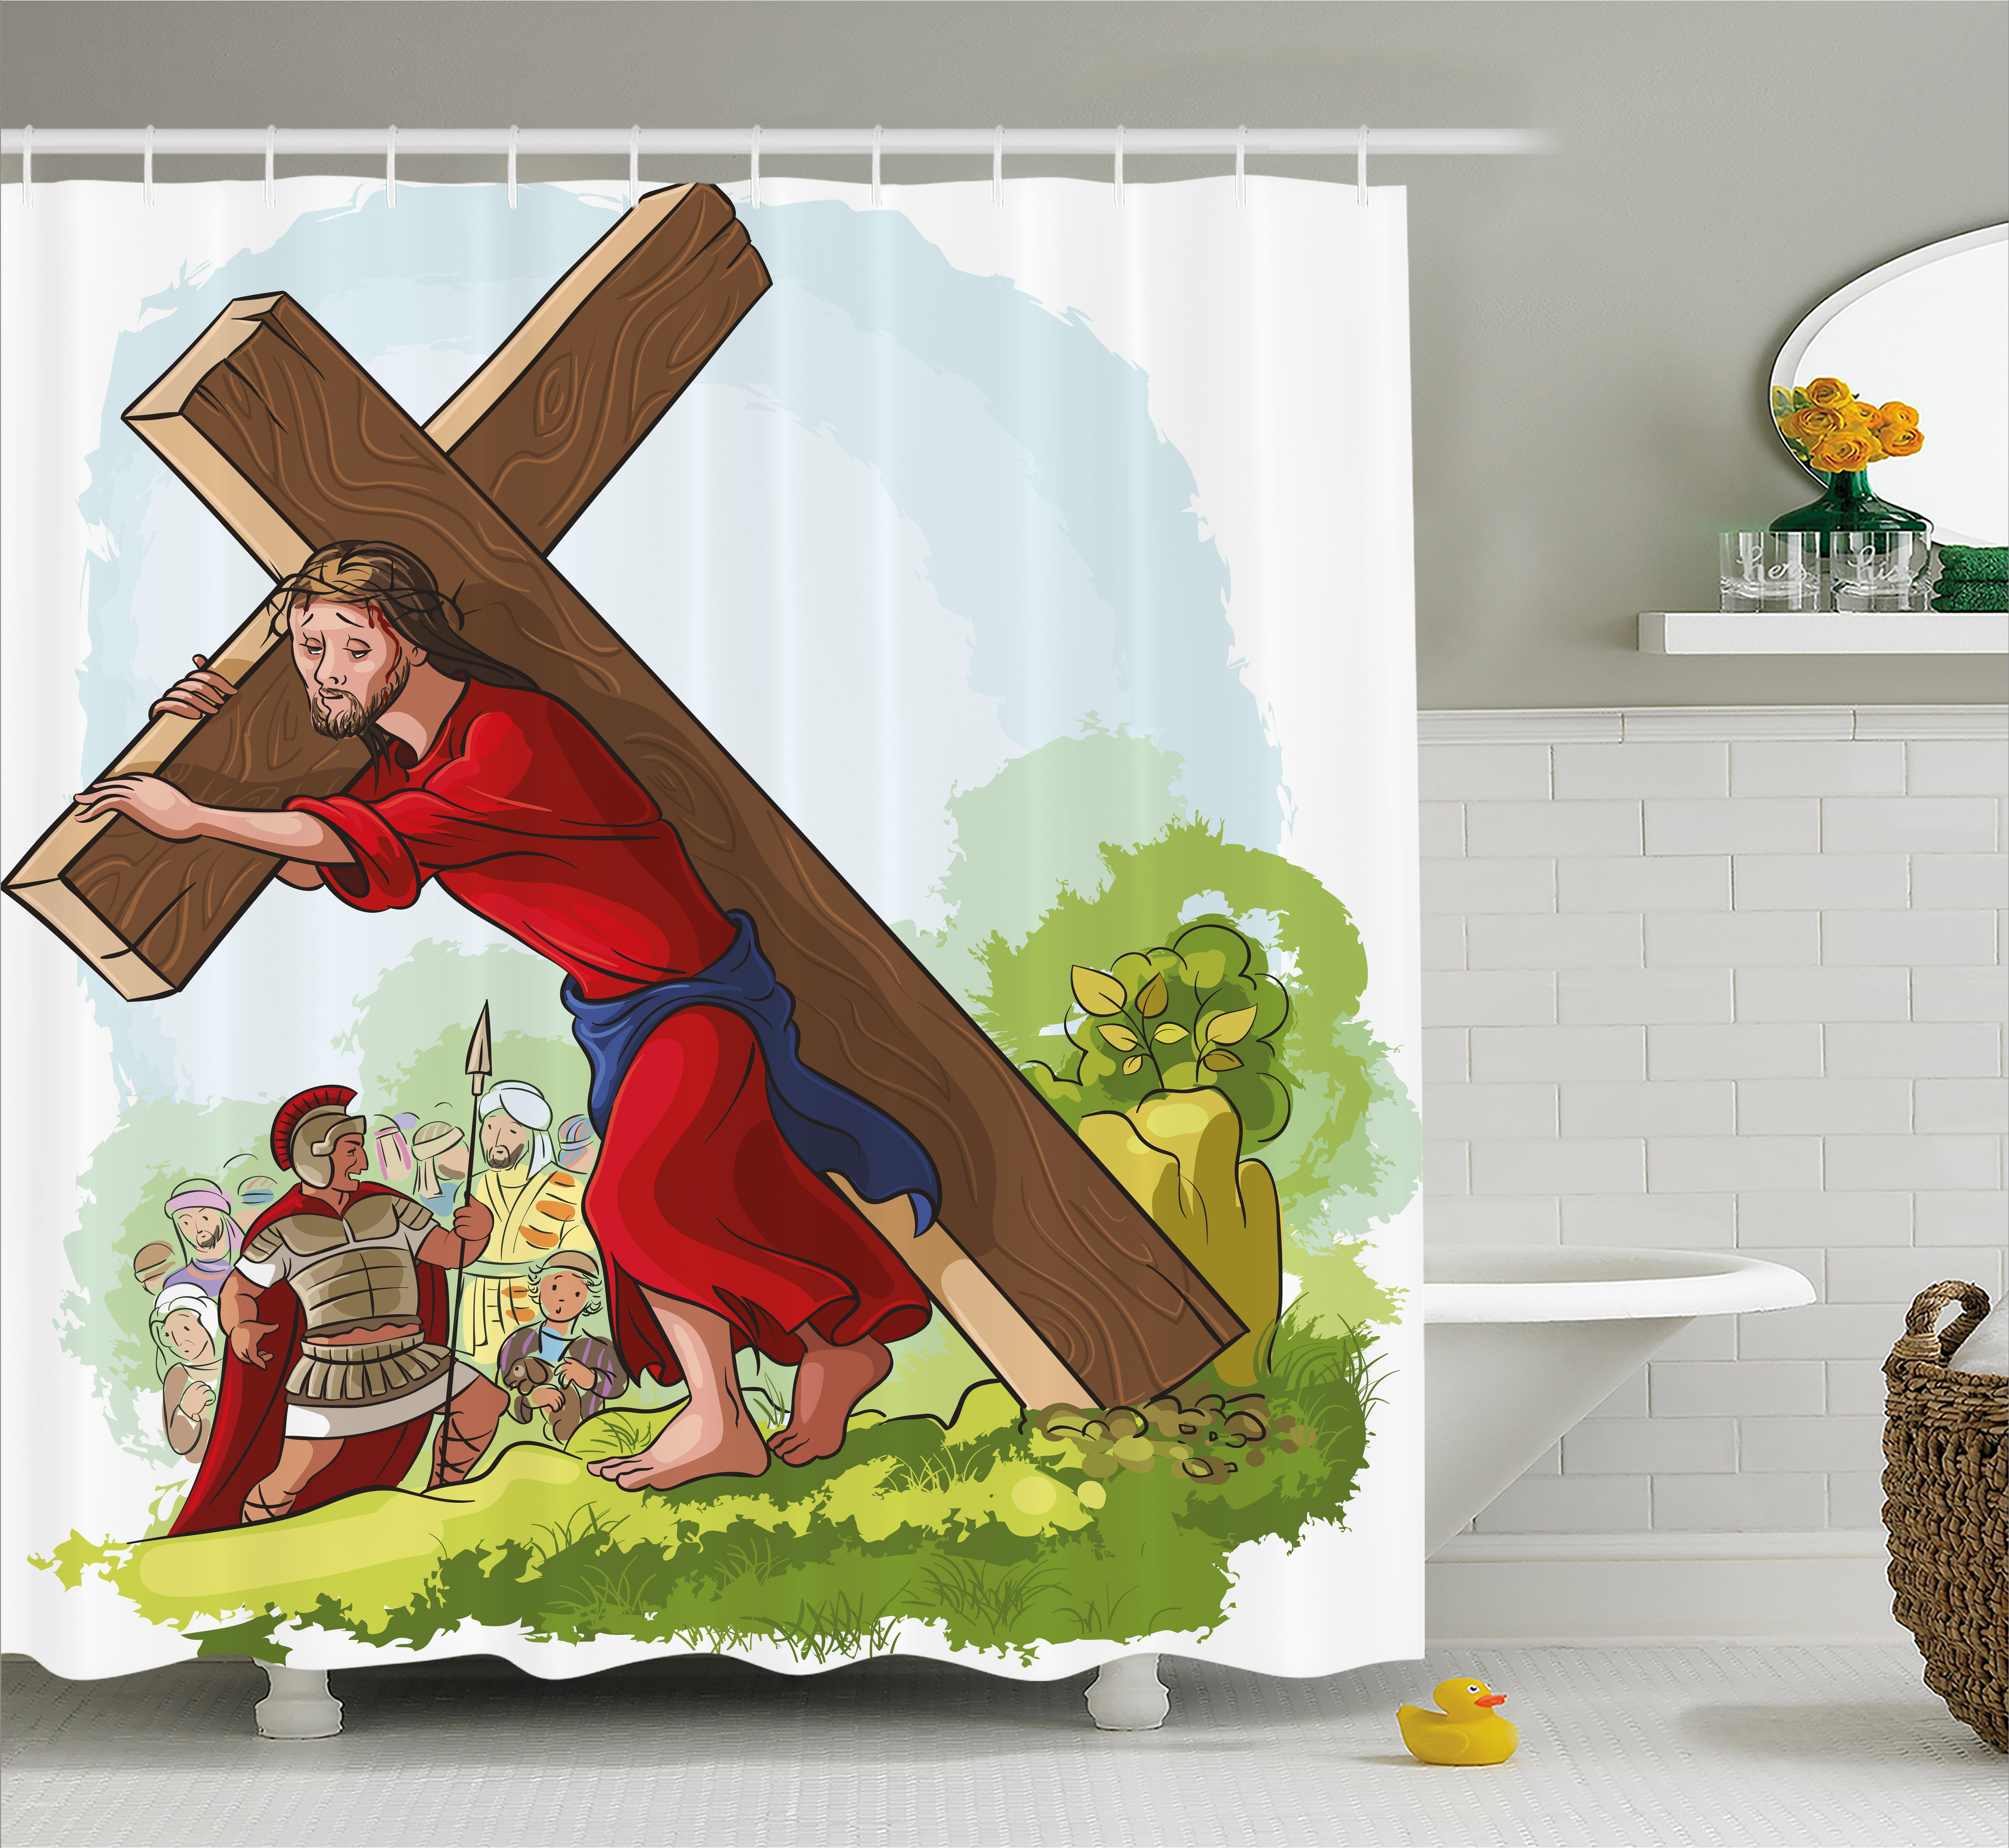 Religious Shower Curtain, Cartoon Style Carrying the Cros...